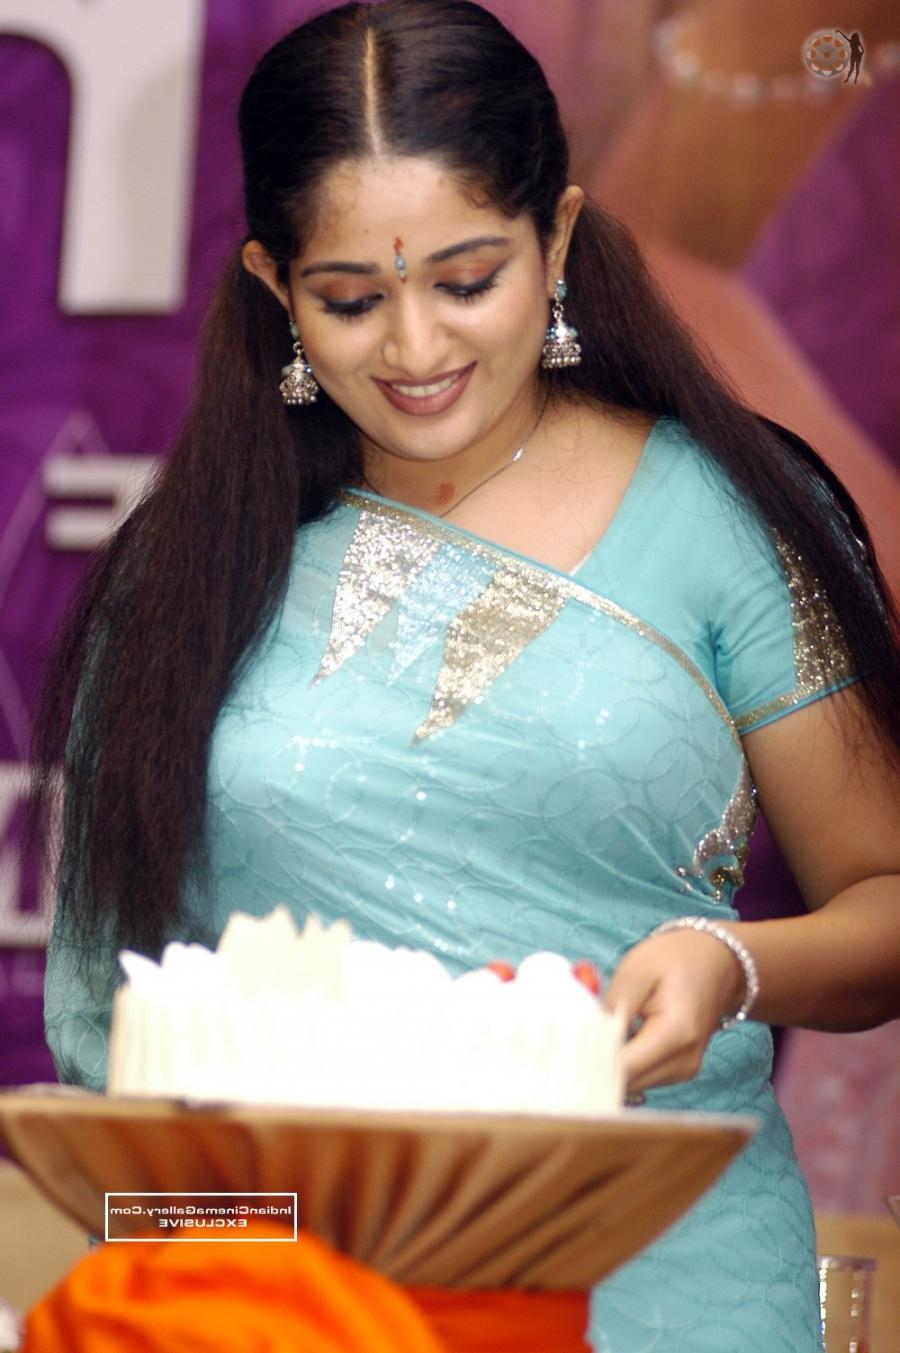 Kavya madhavan blue film photos wallpapers for Kavya madhavan bathroom